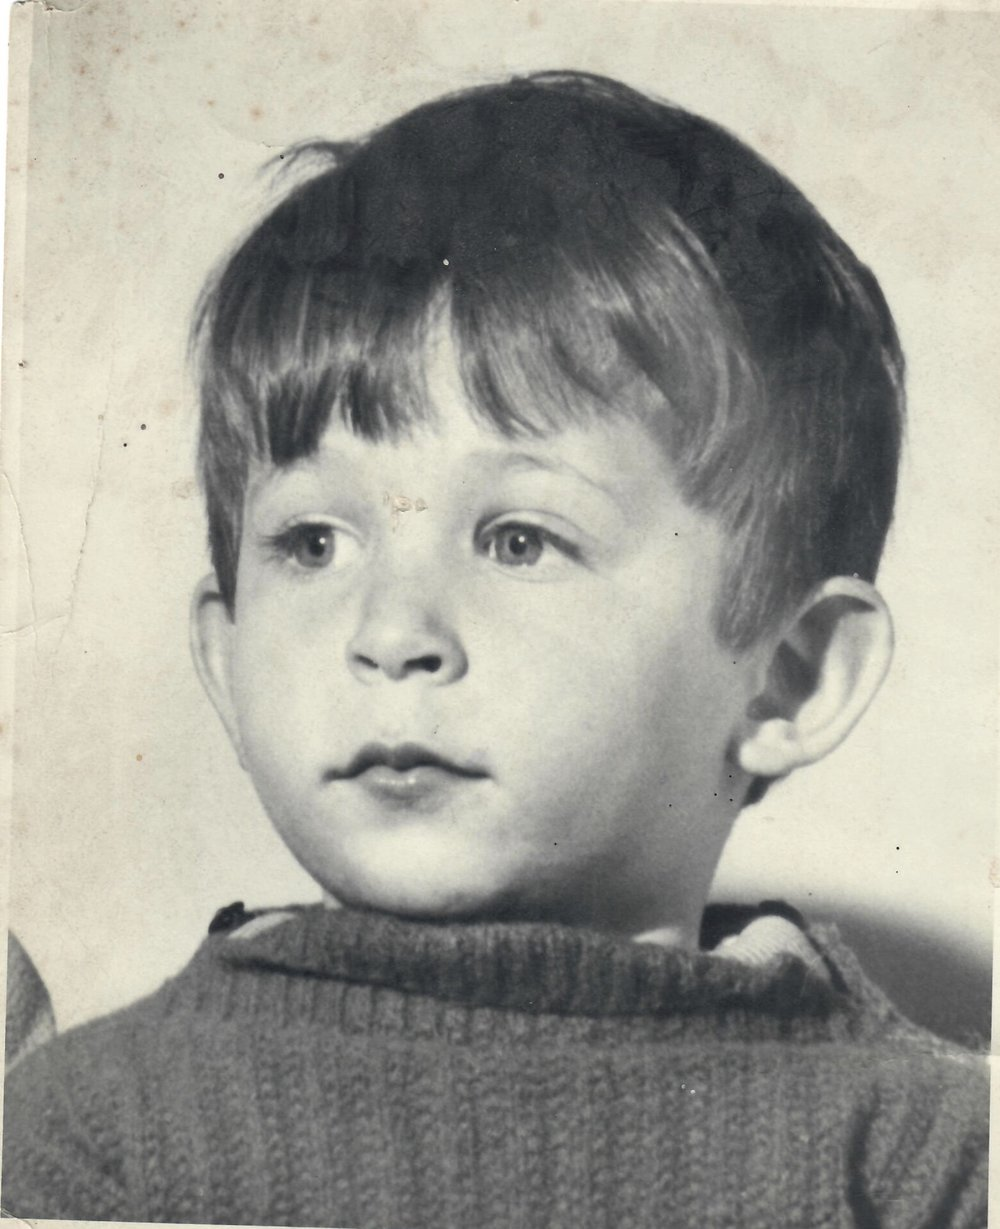 Roger the cute, ca. 1965